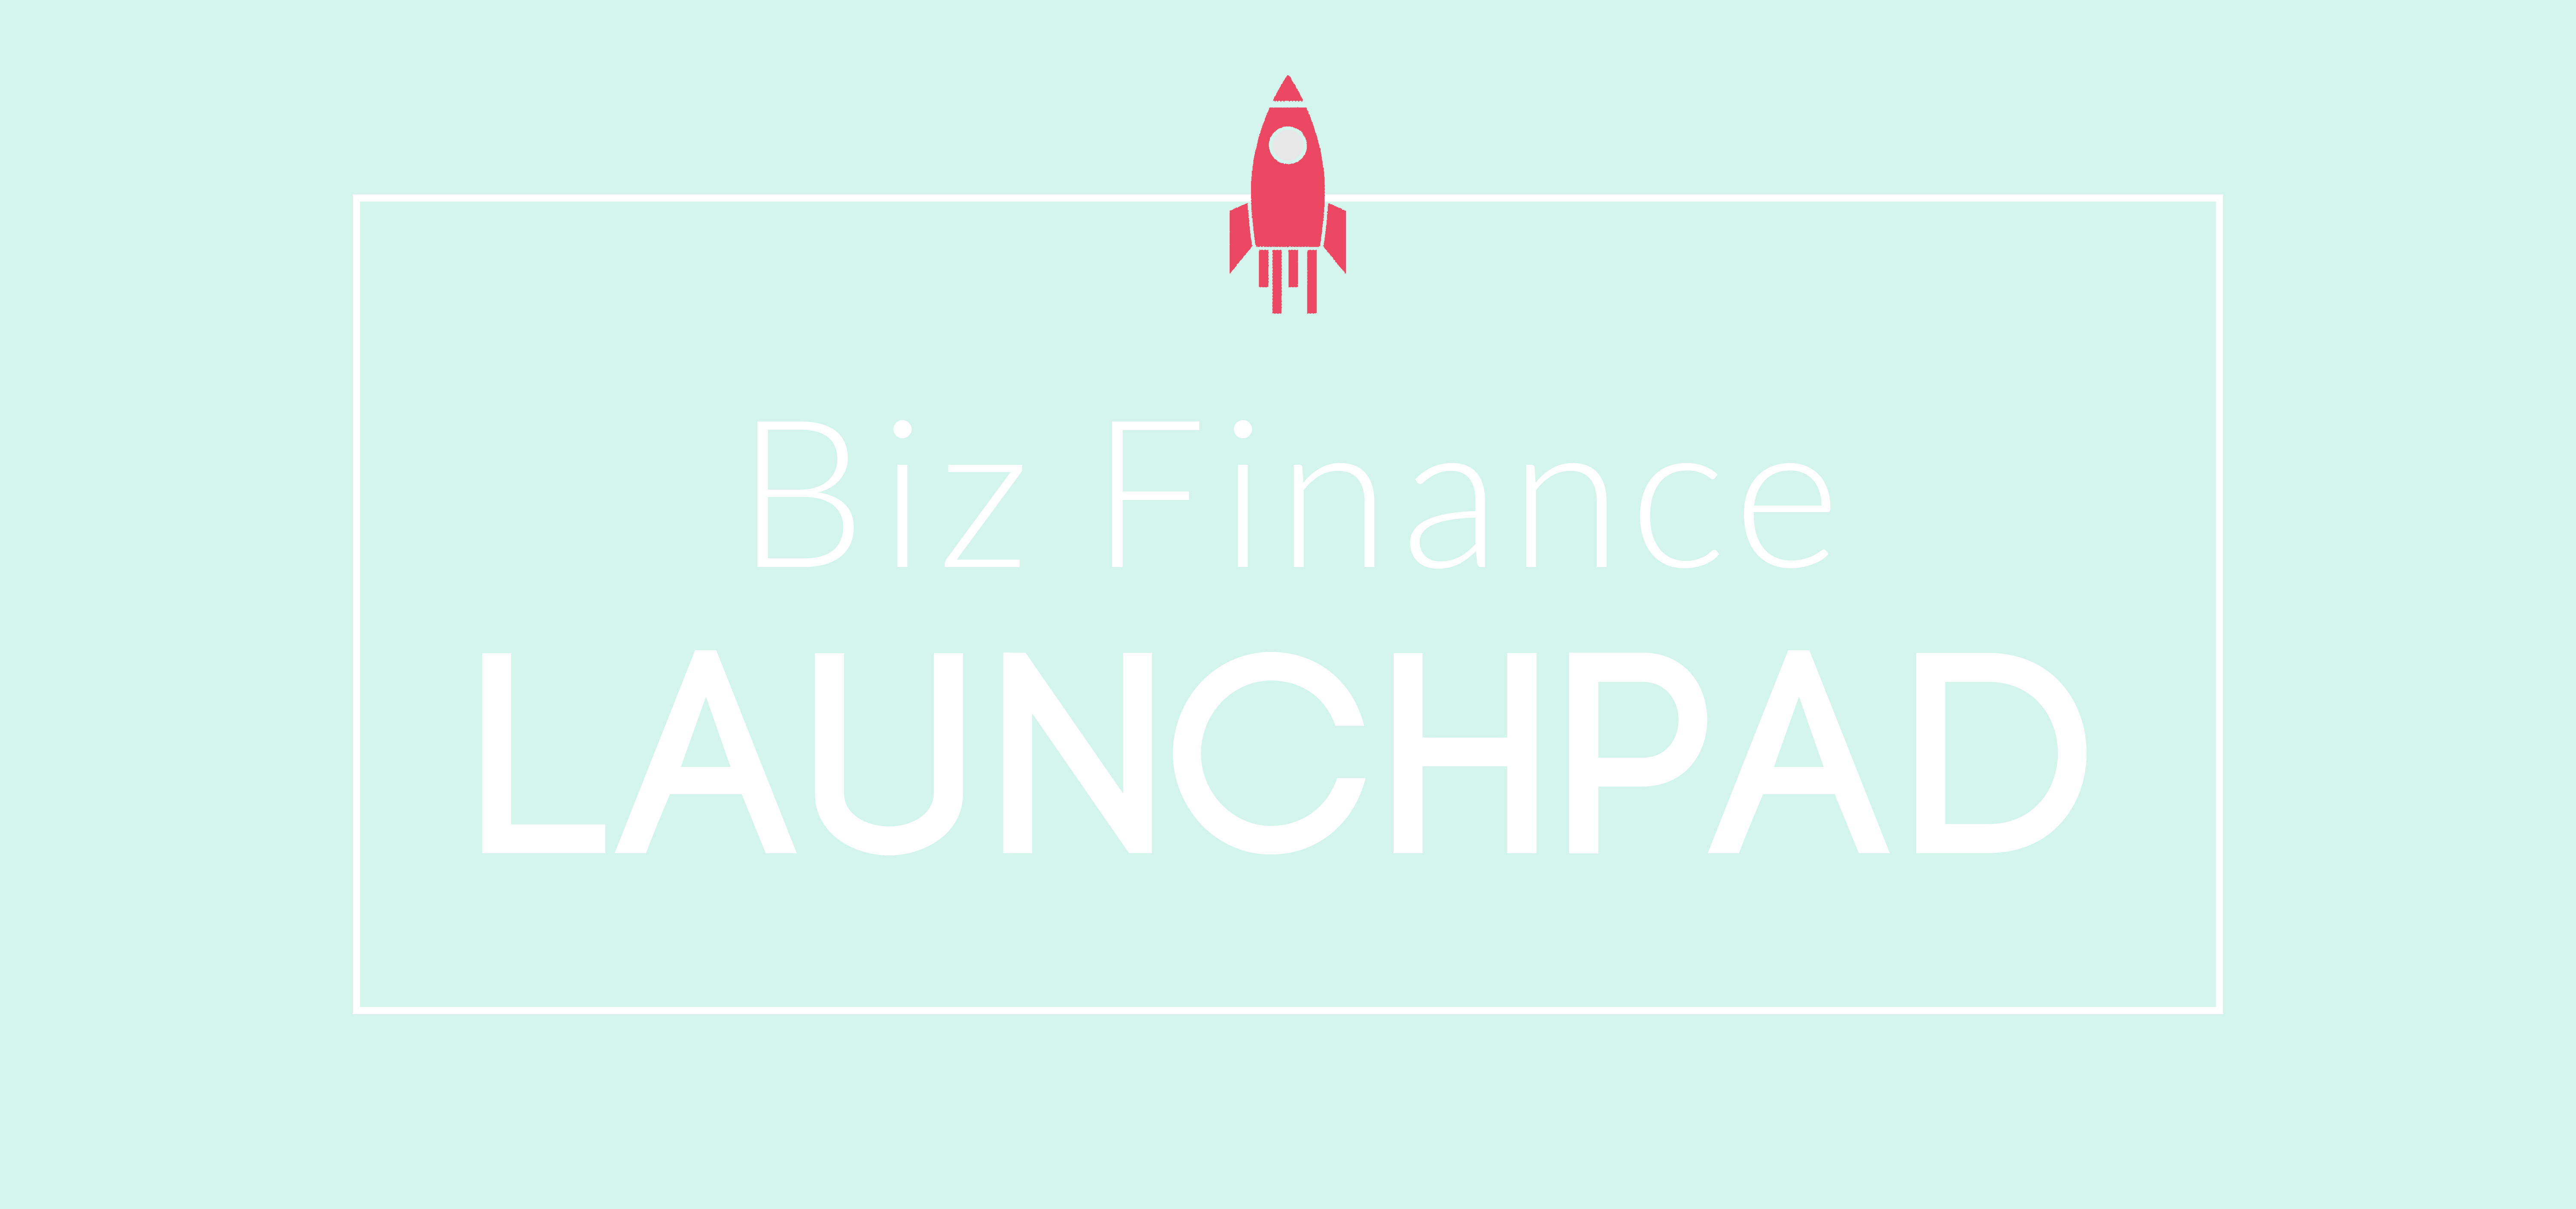 Biz Finance Launchpad | the BFF course